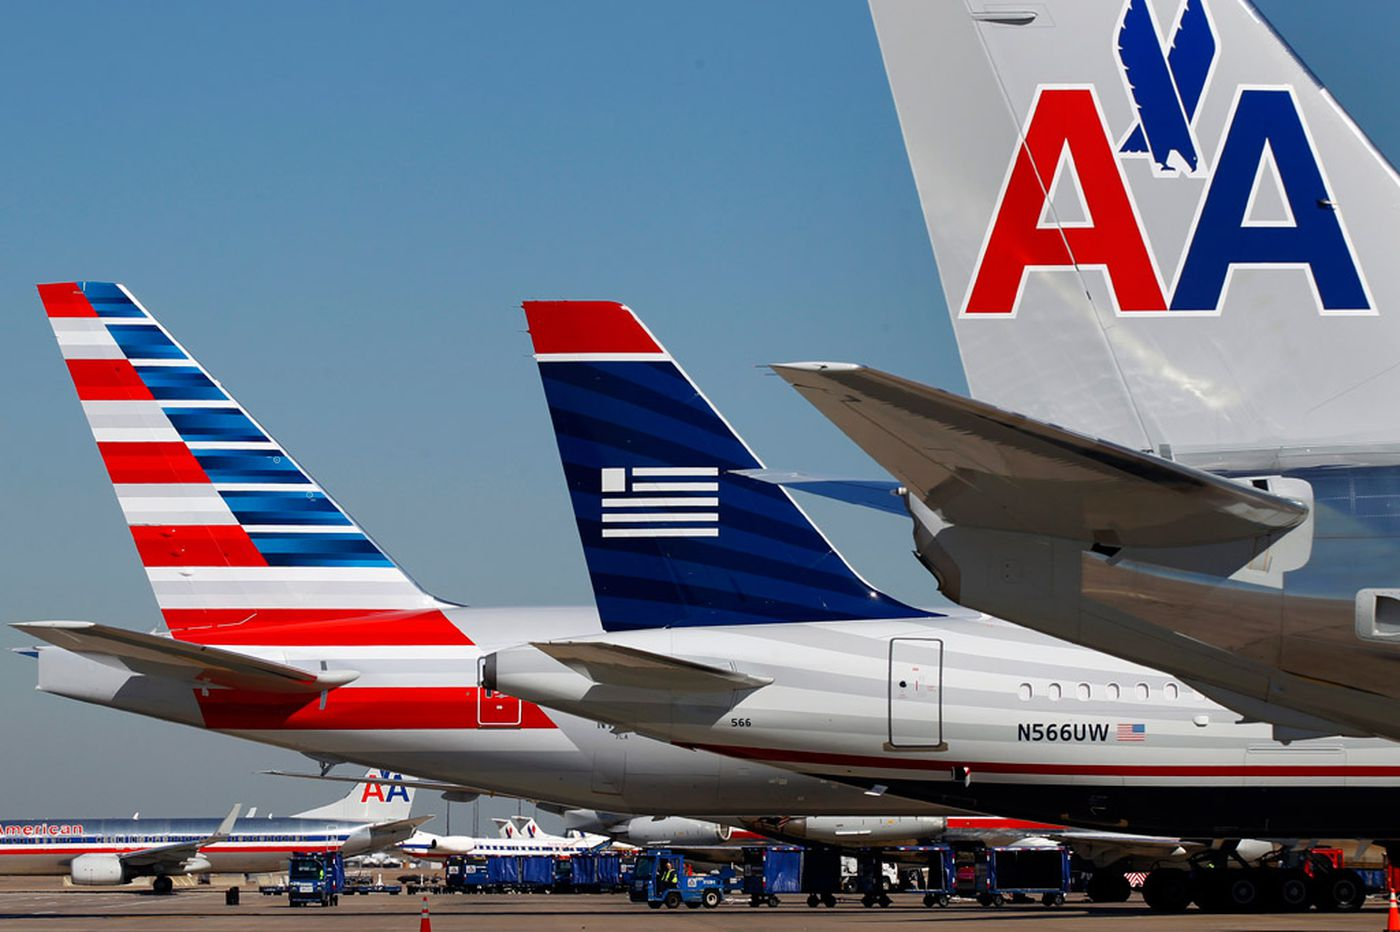 Eighty American Airlines employees claim racial discrimination and safety violations